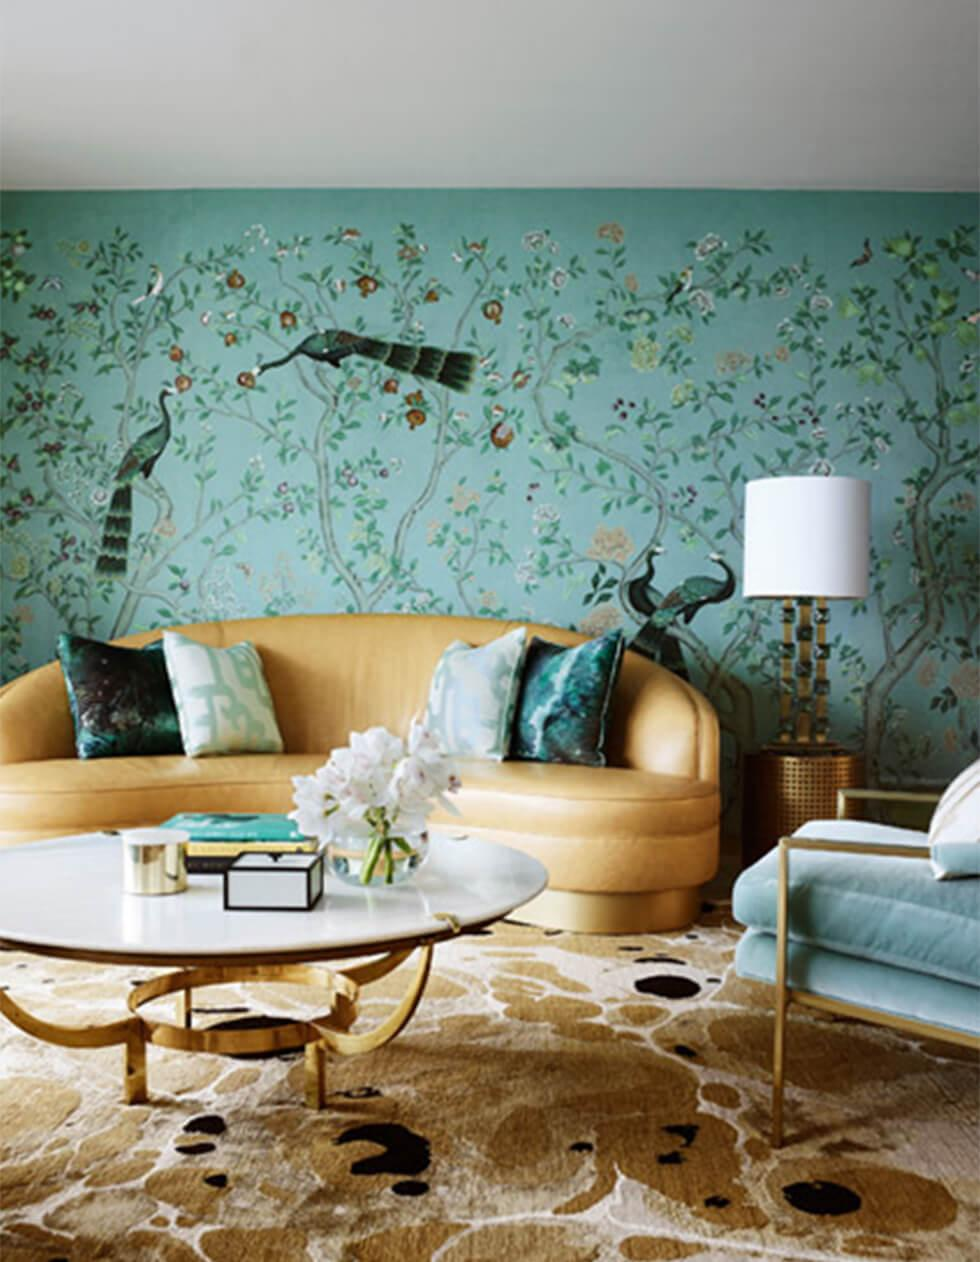 Mid century mint green living room with patterned wallpaper and a light brown couch and rug